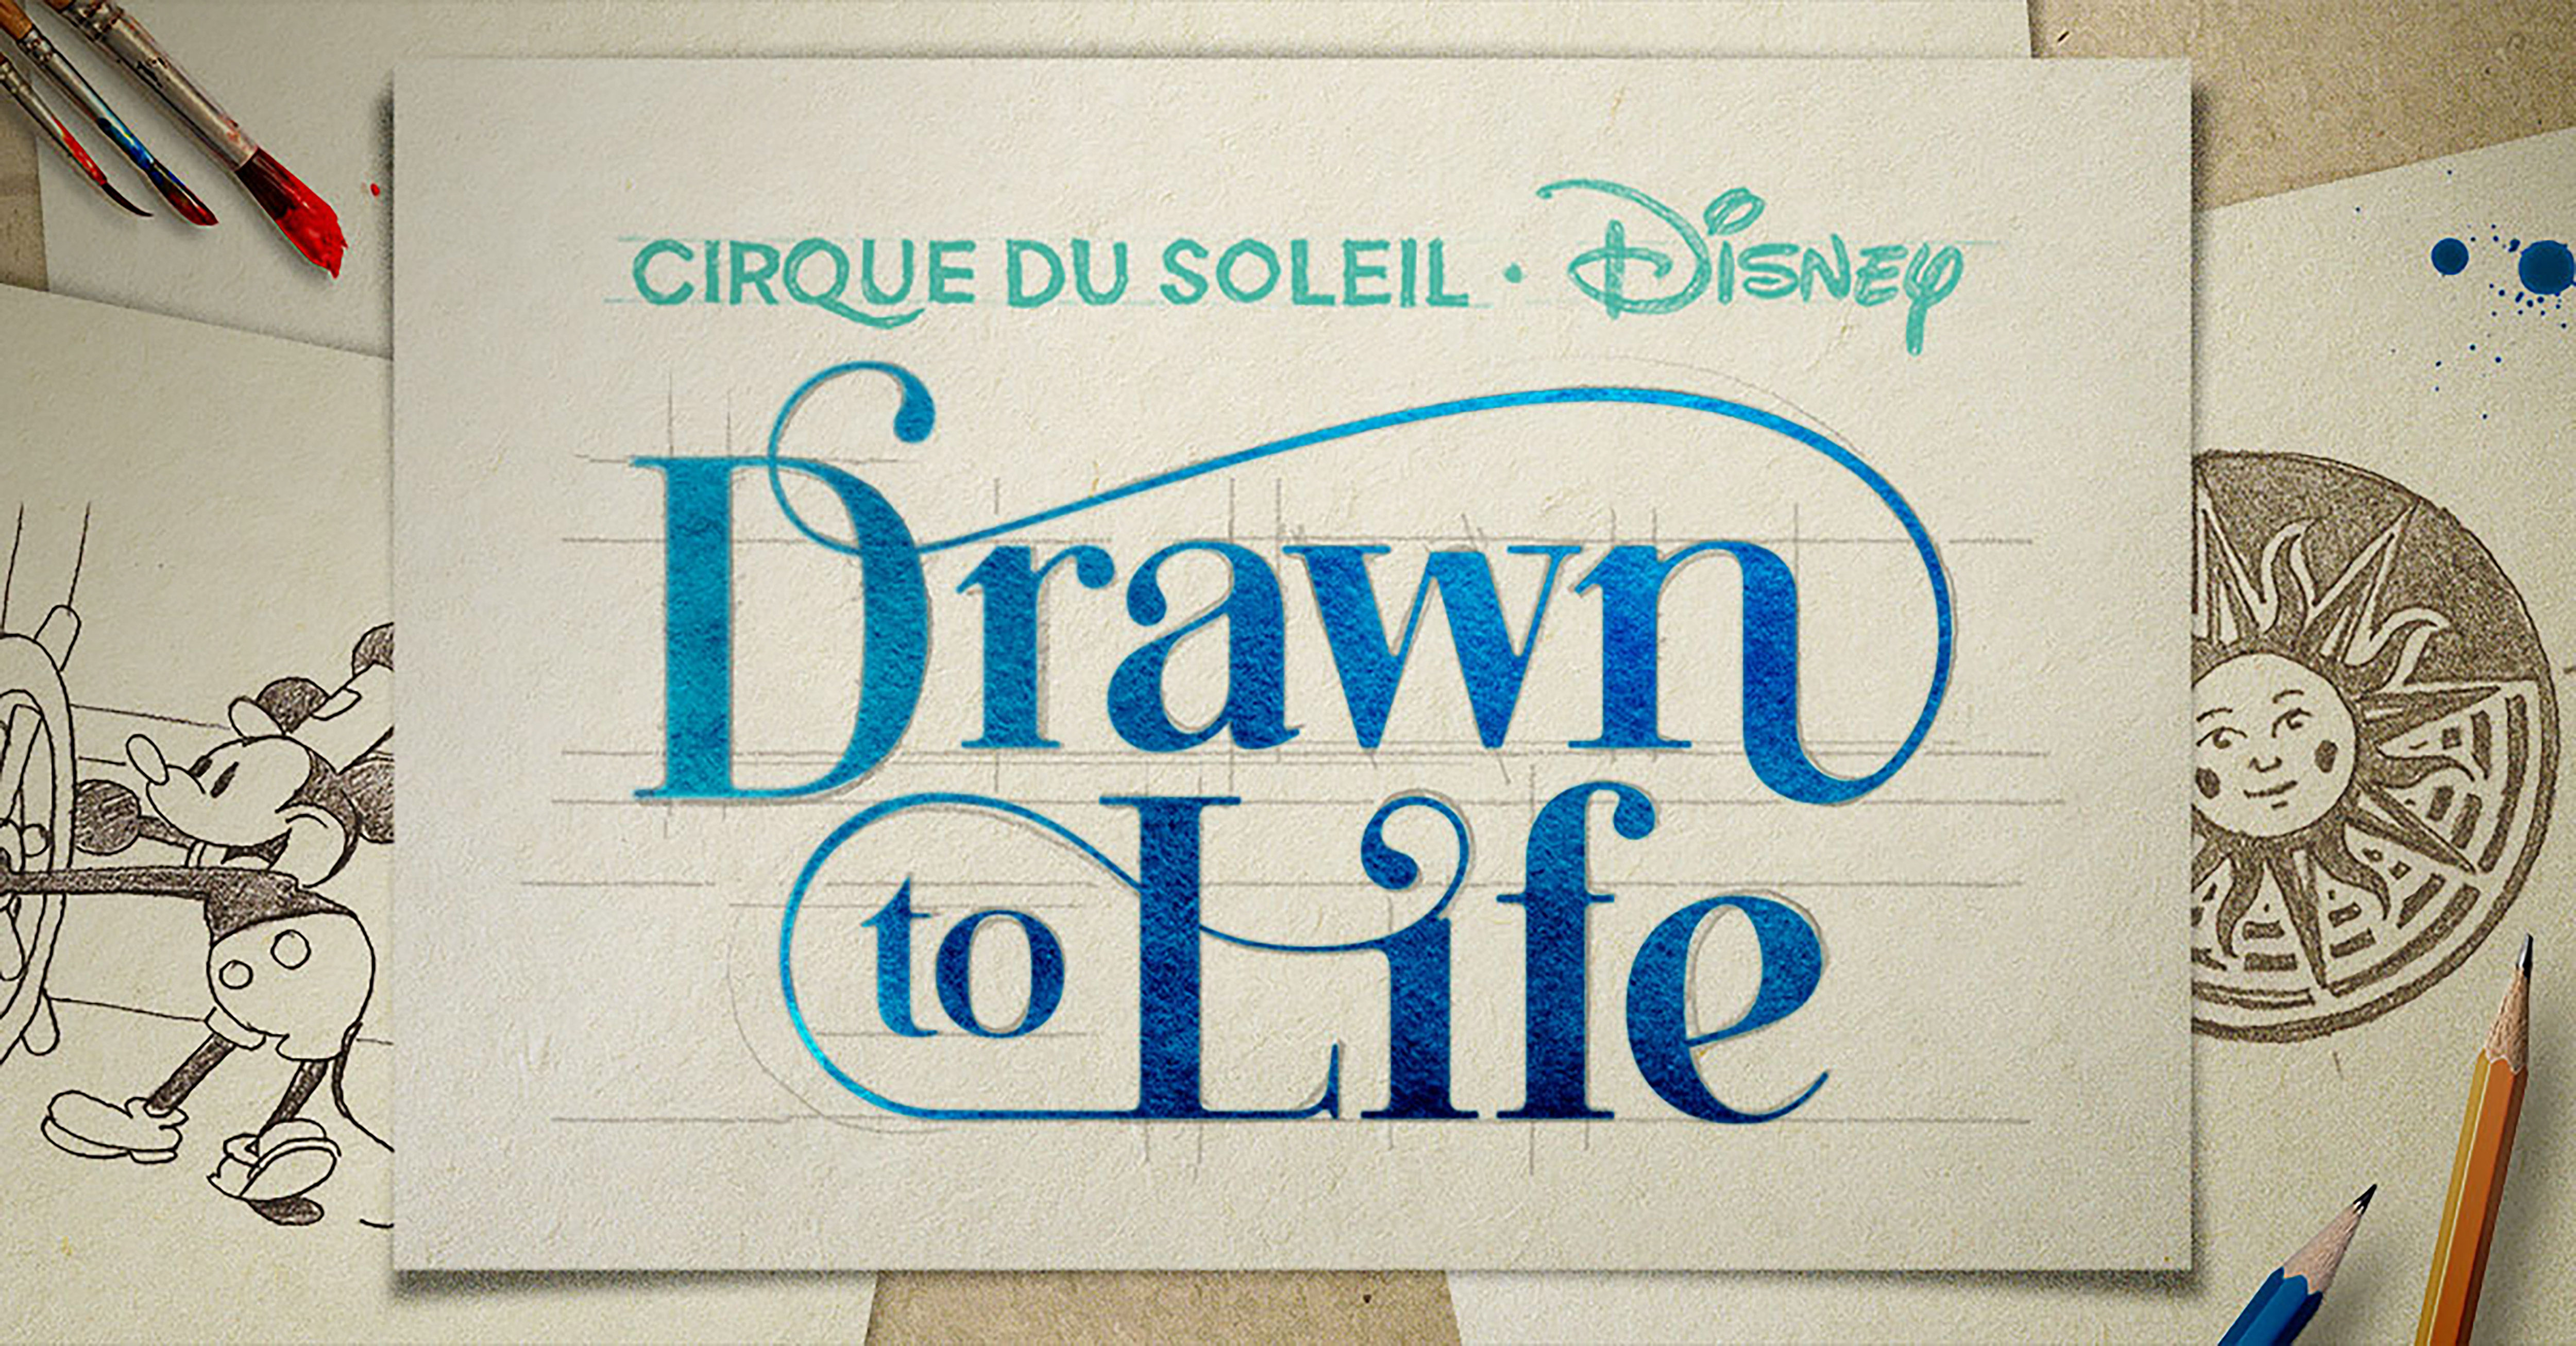 Cirque du Soleil Drawn to Life logo